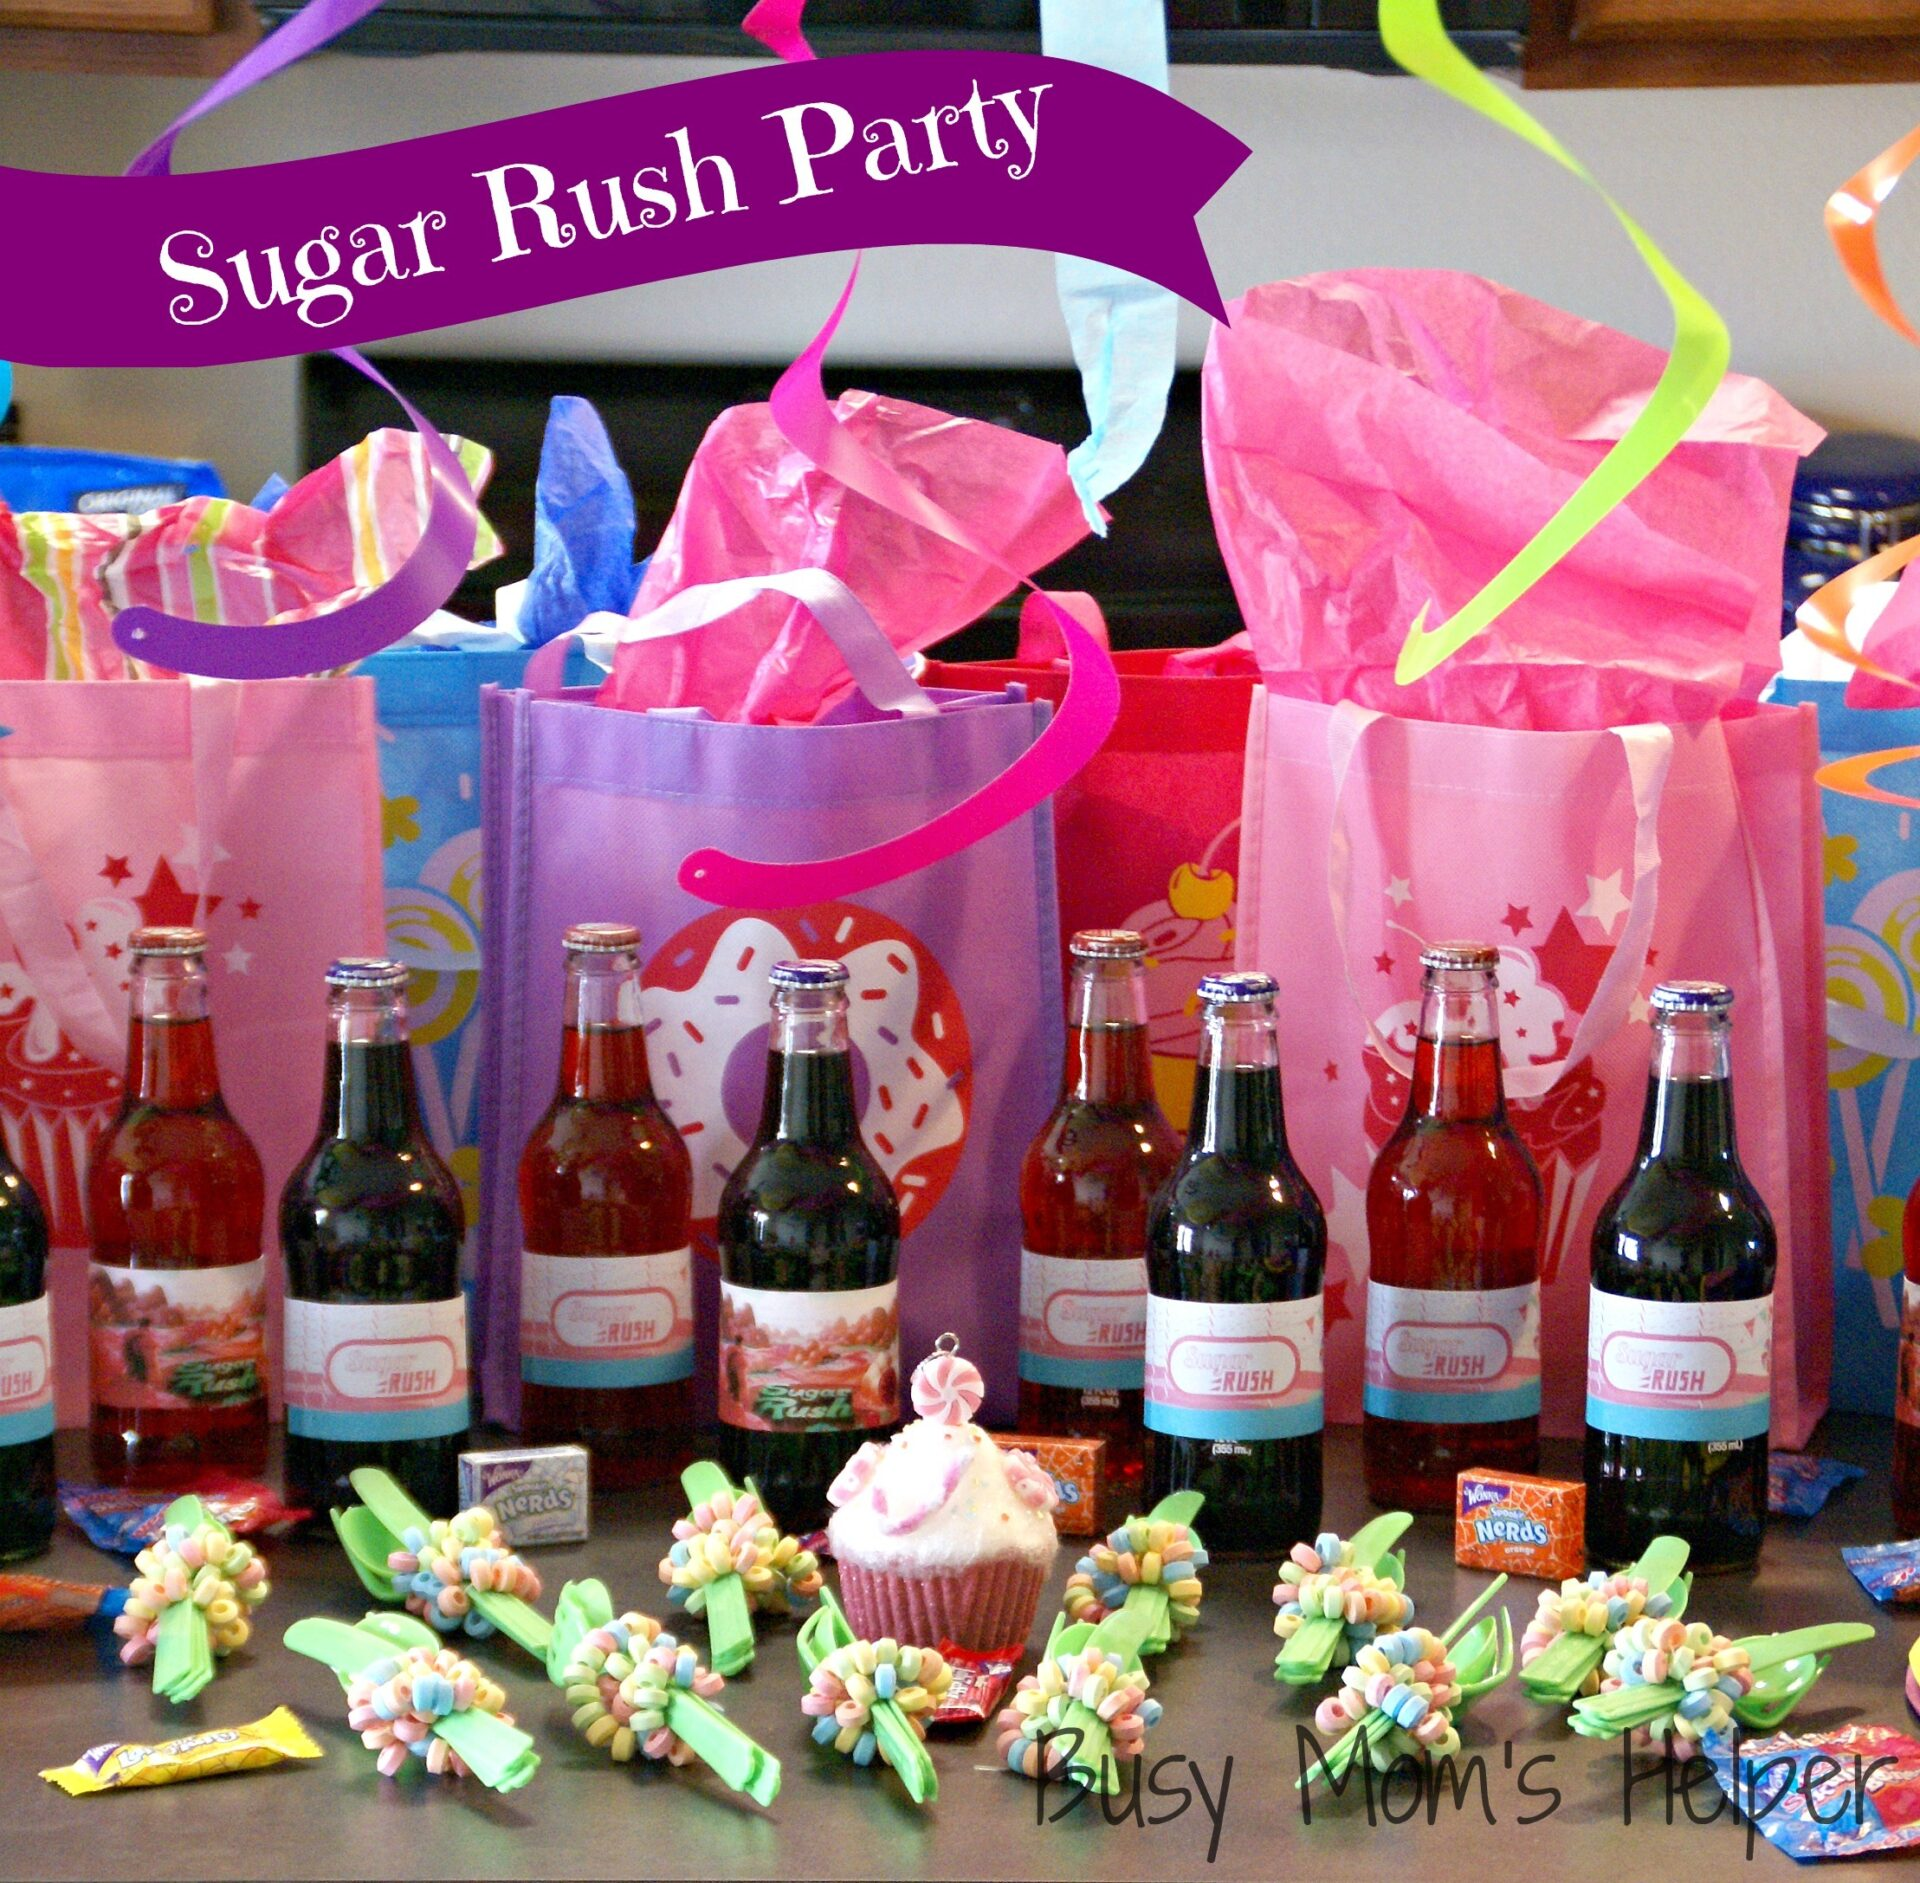 Sugar Rush Party Series: Activities, Games & Crafts / Busy Mom's Helper